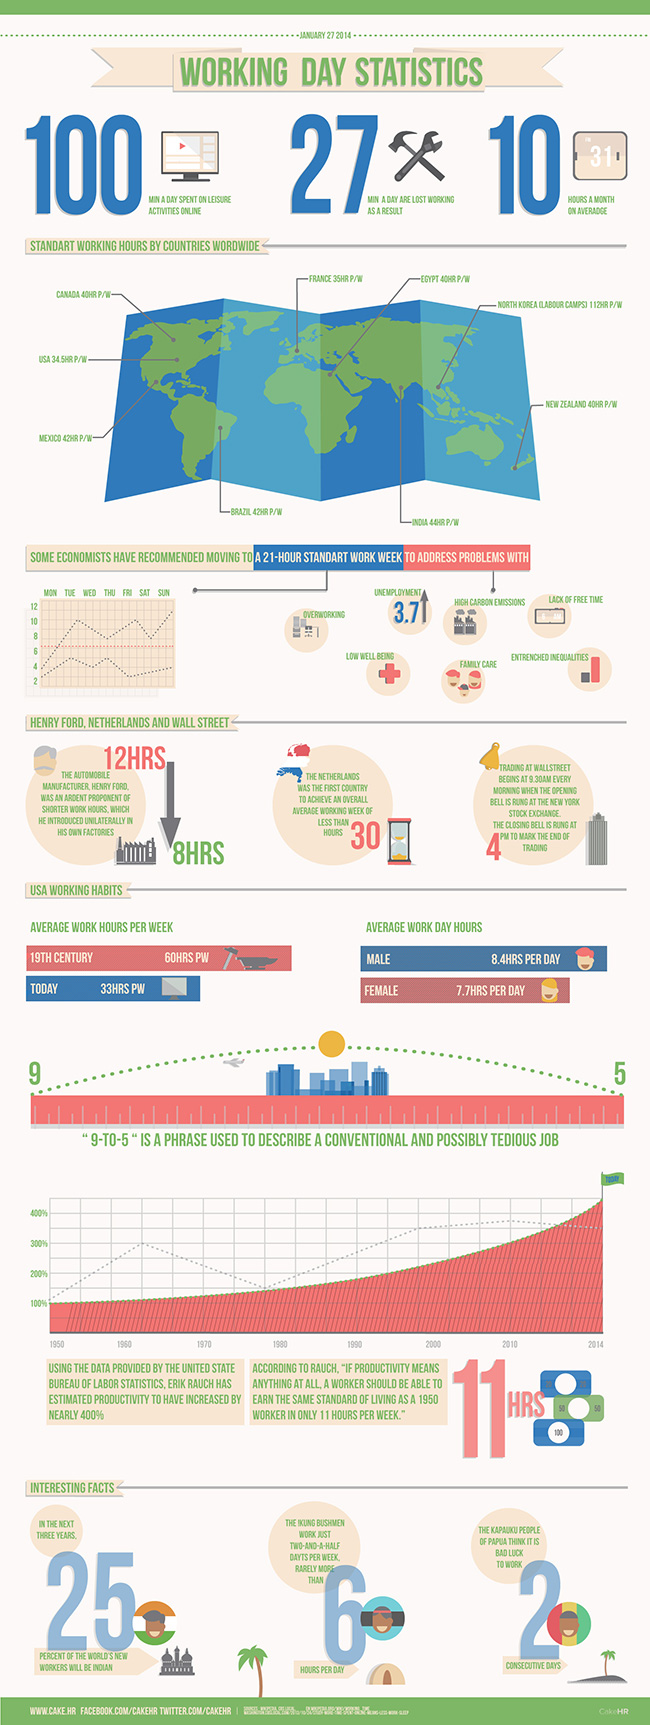 Working Day Statistics Infographic by CakeHR